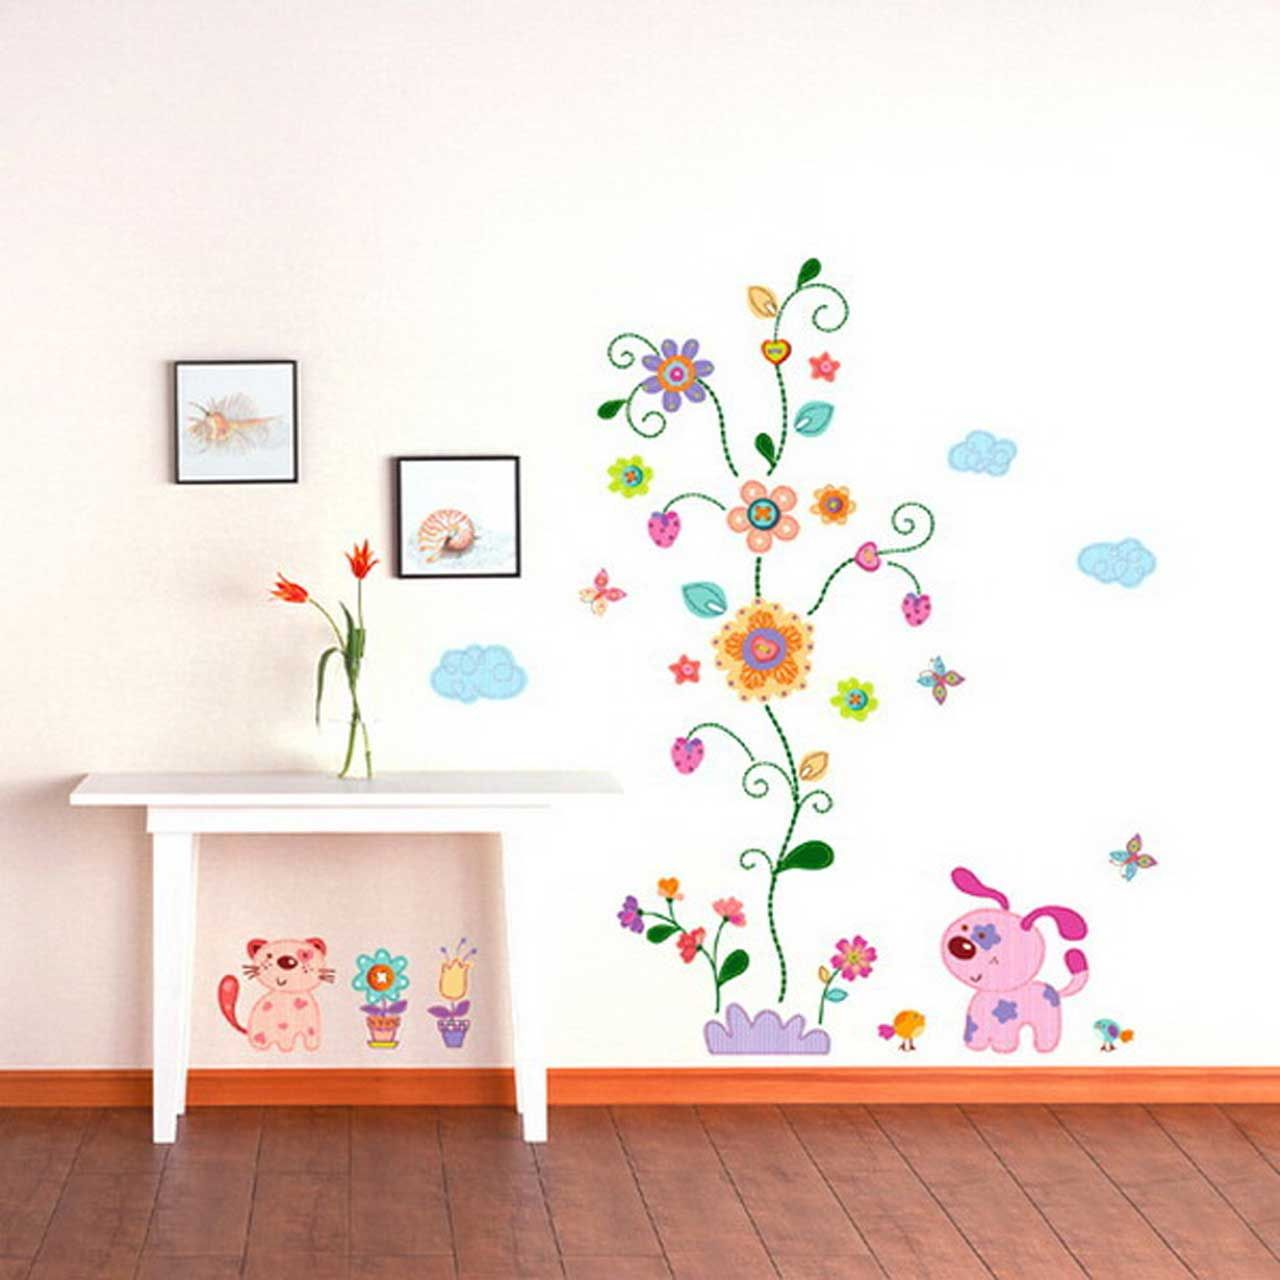 Wall Art Ideas For Teenagers Beautiful Kids Room Decorating Design Ideas With Creative